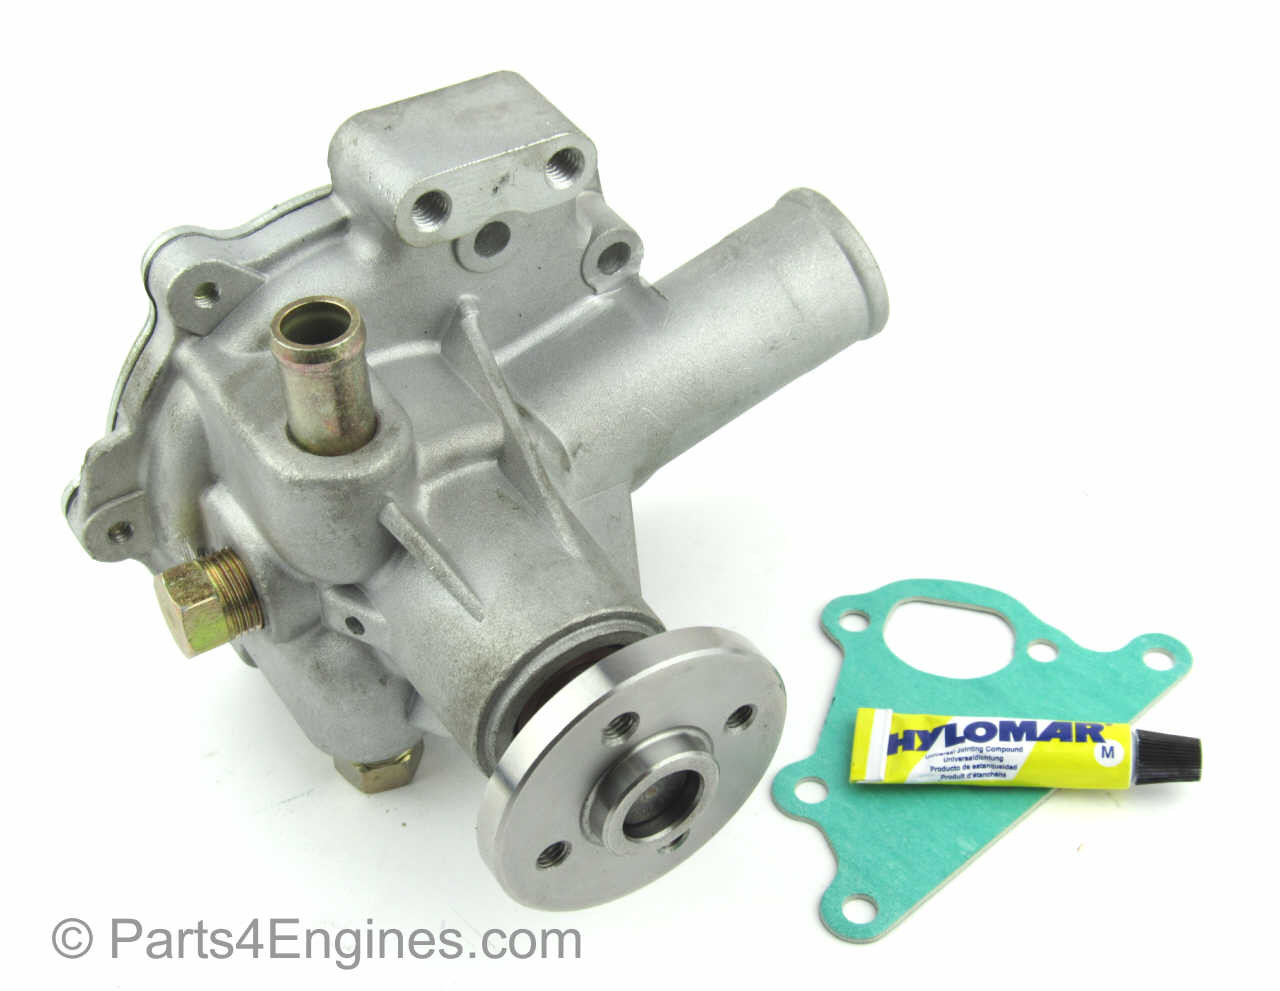 Perkins 400 Series water pump to fit HL, HM, HP & HR engine codes - parts4engines.com